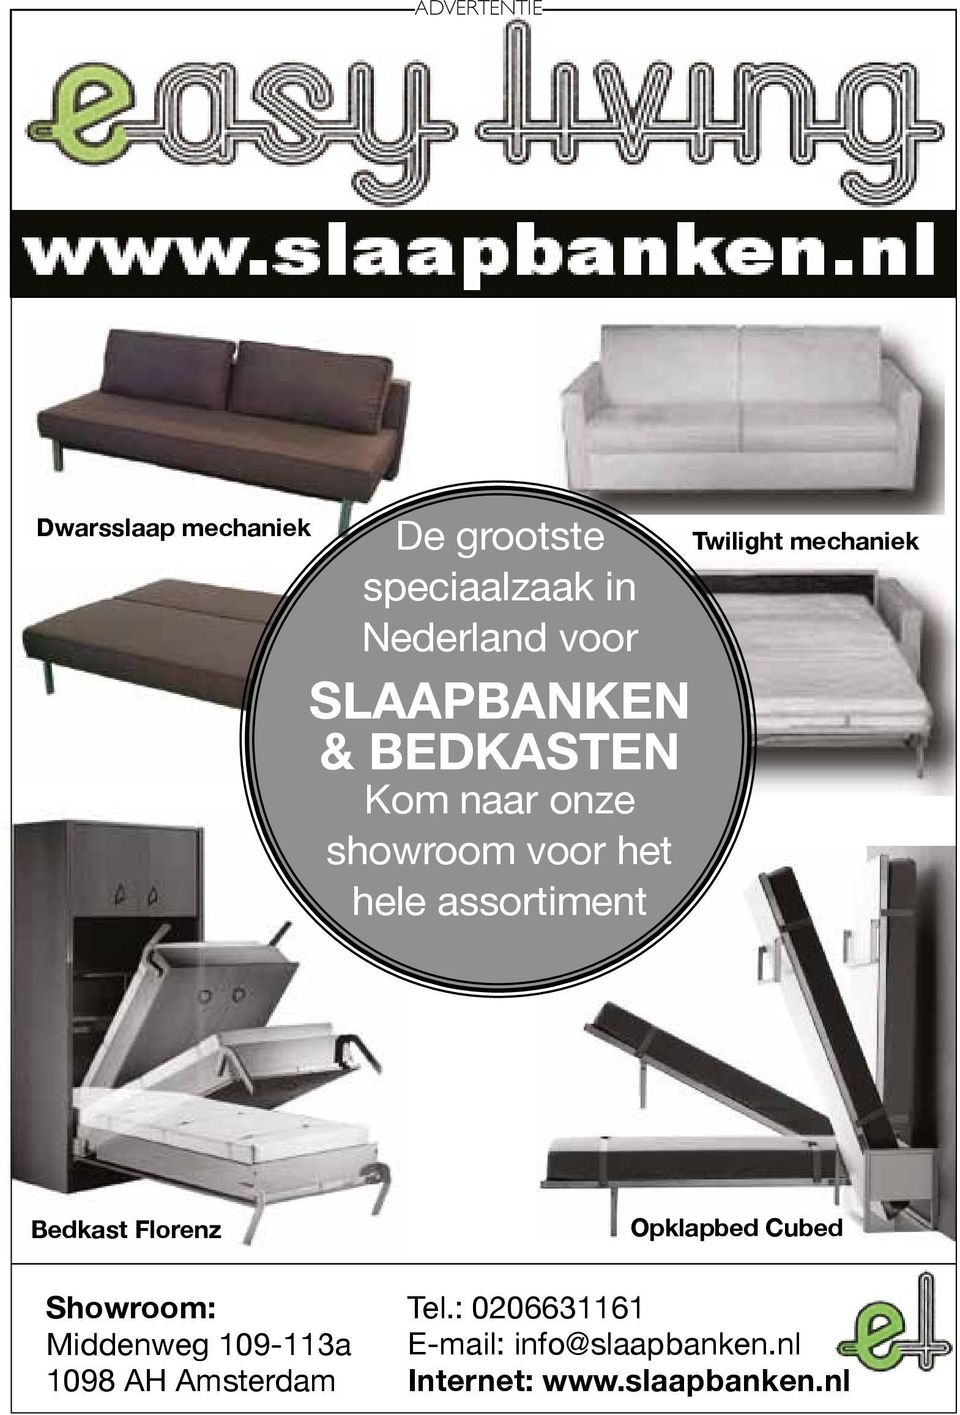 Twilight mechaniek Bedkast Florenz Opklapbed Cubed Showroom: Middenweg 109-113a